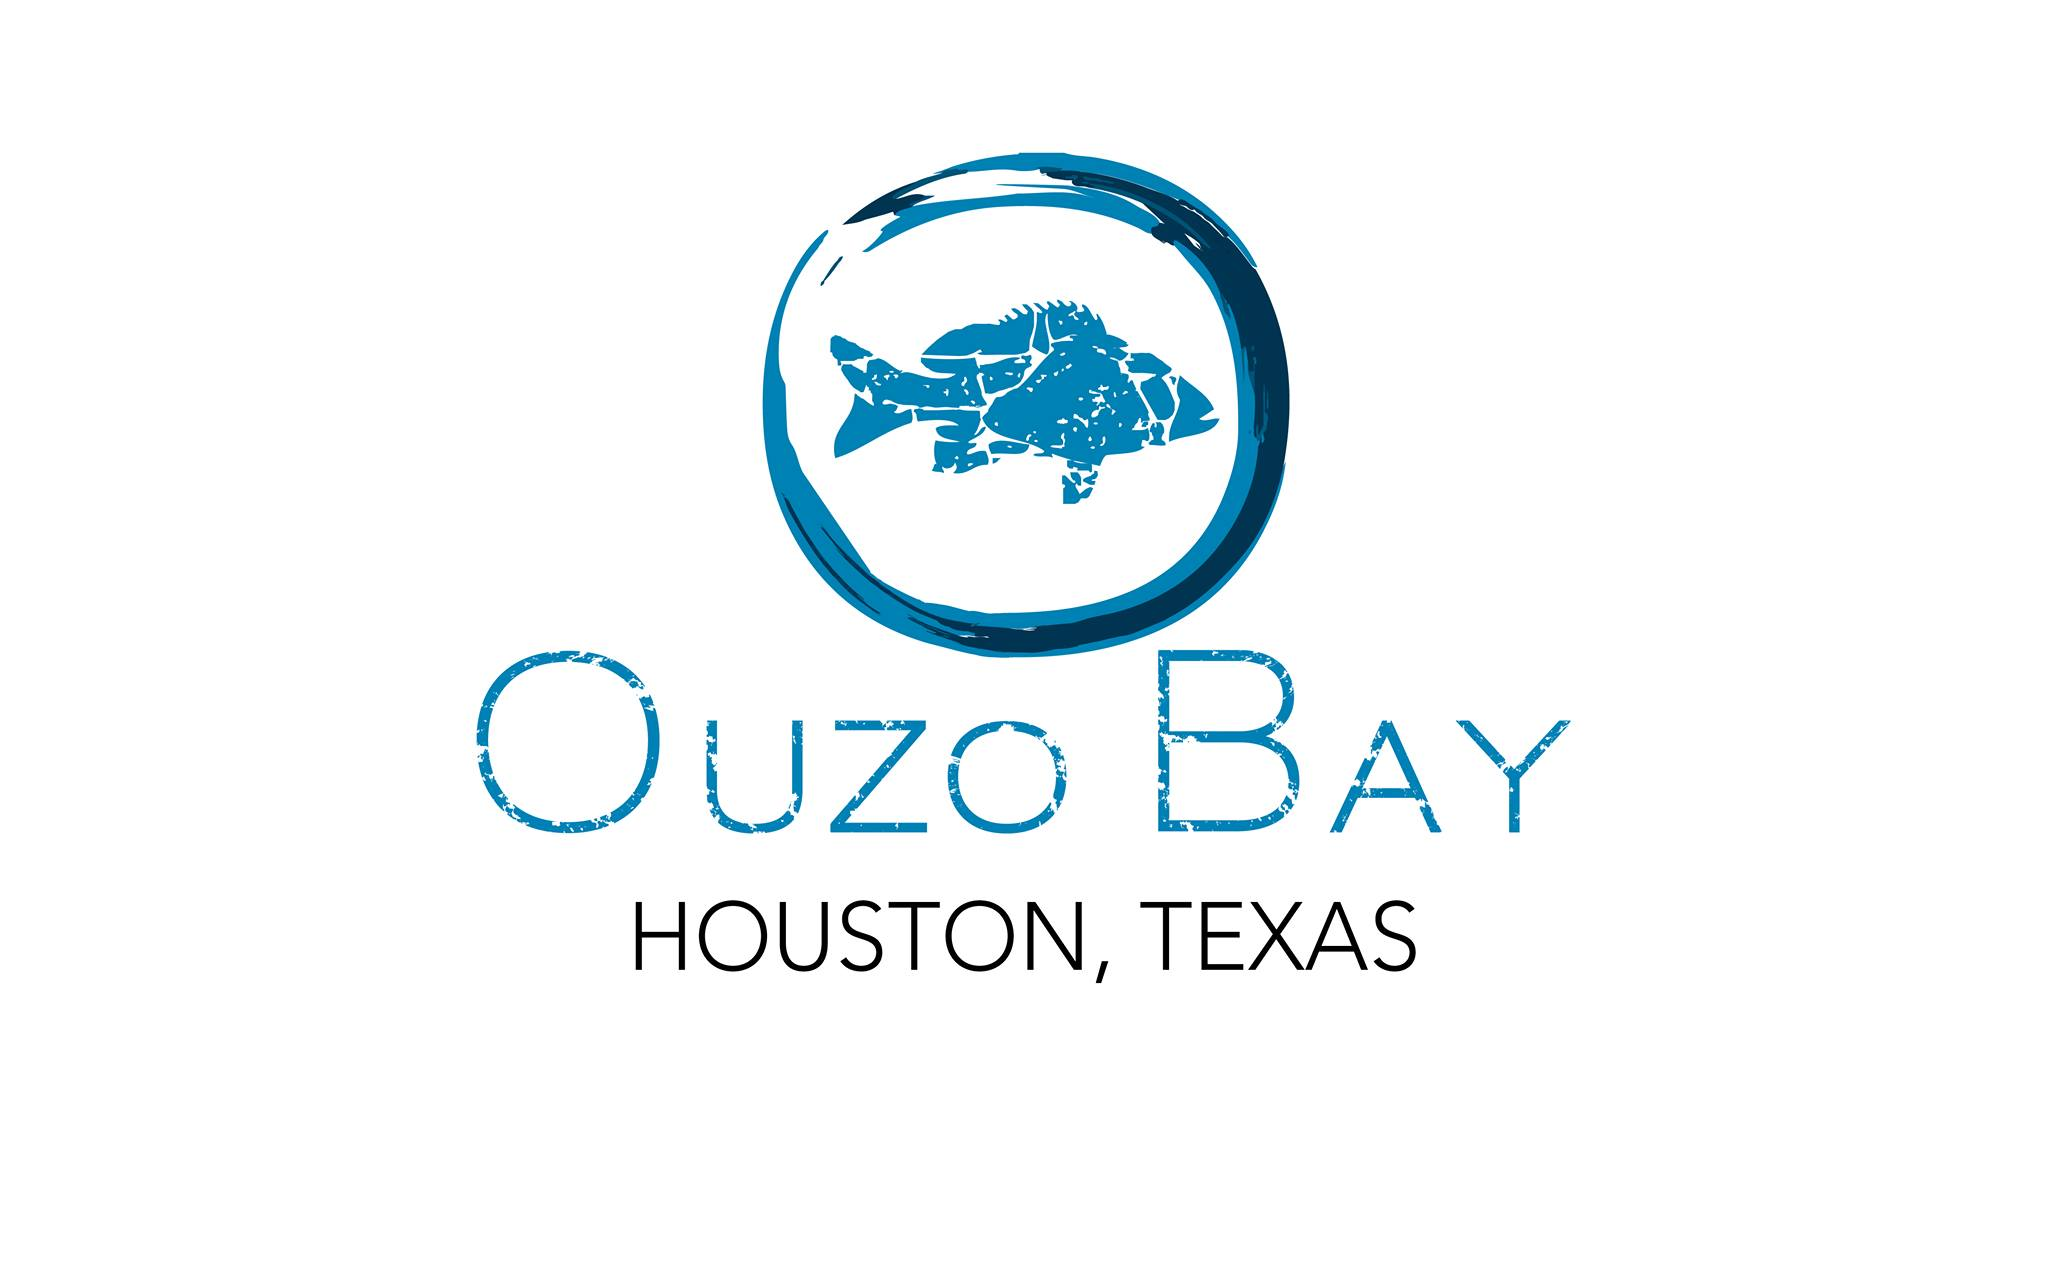 Ouzo Bay restaurant located in HOUSTON, TX